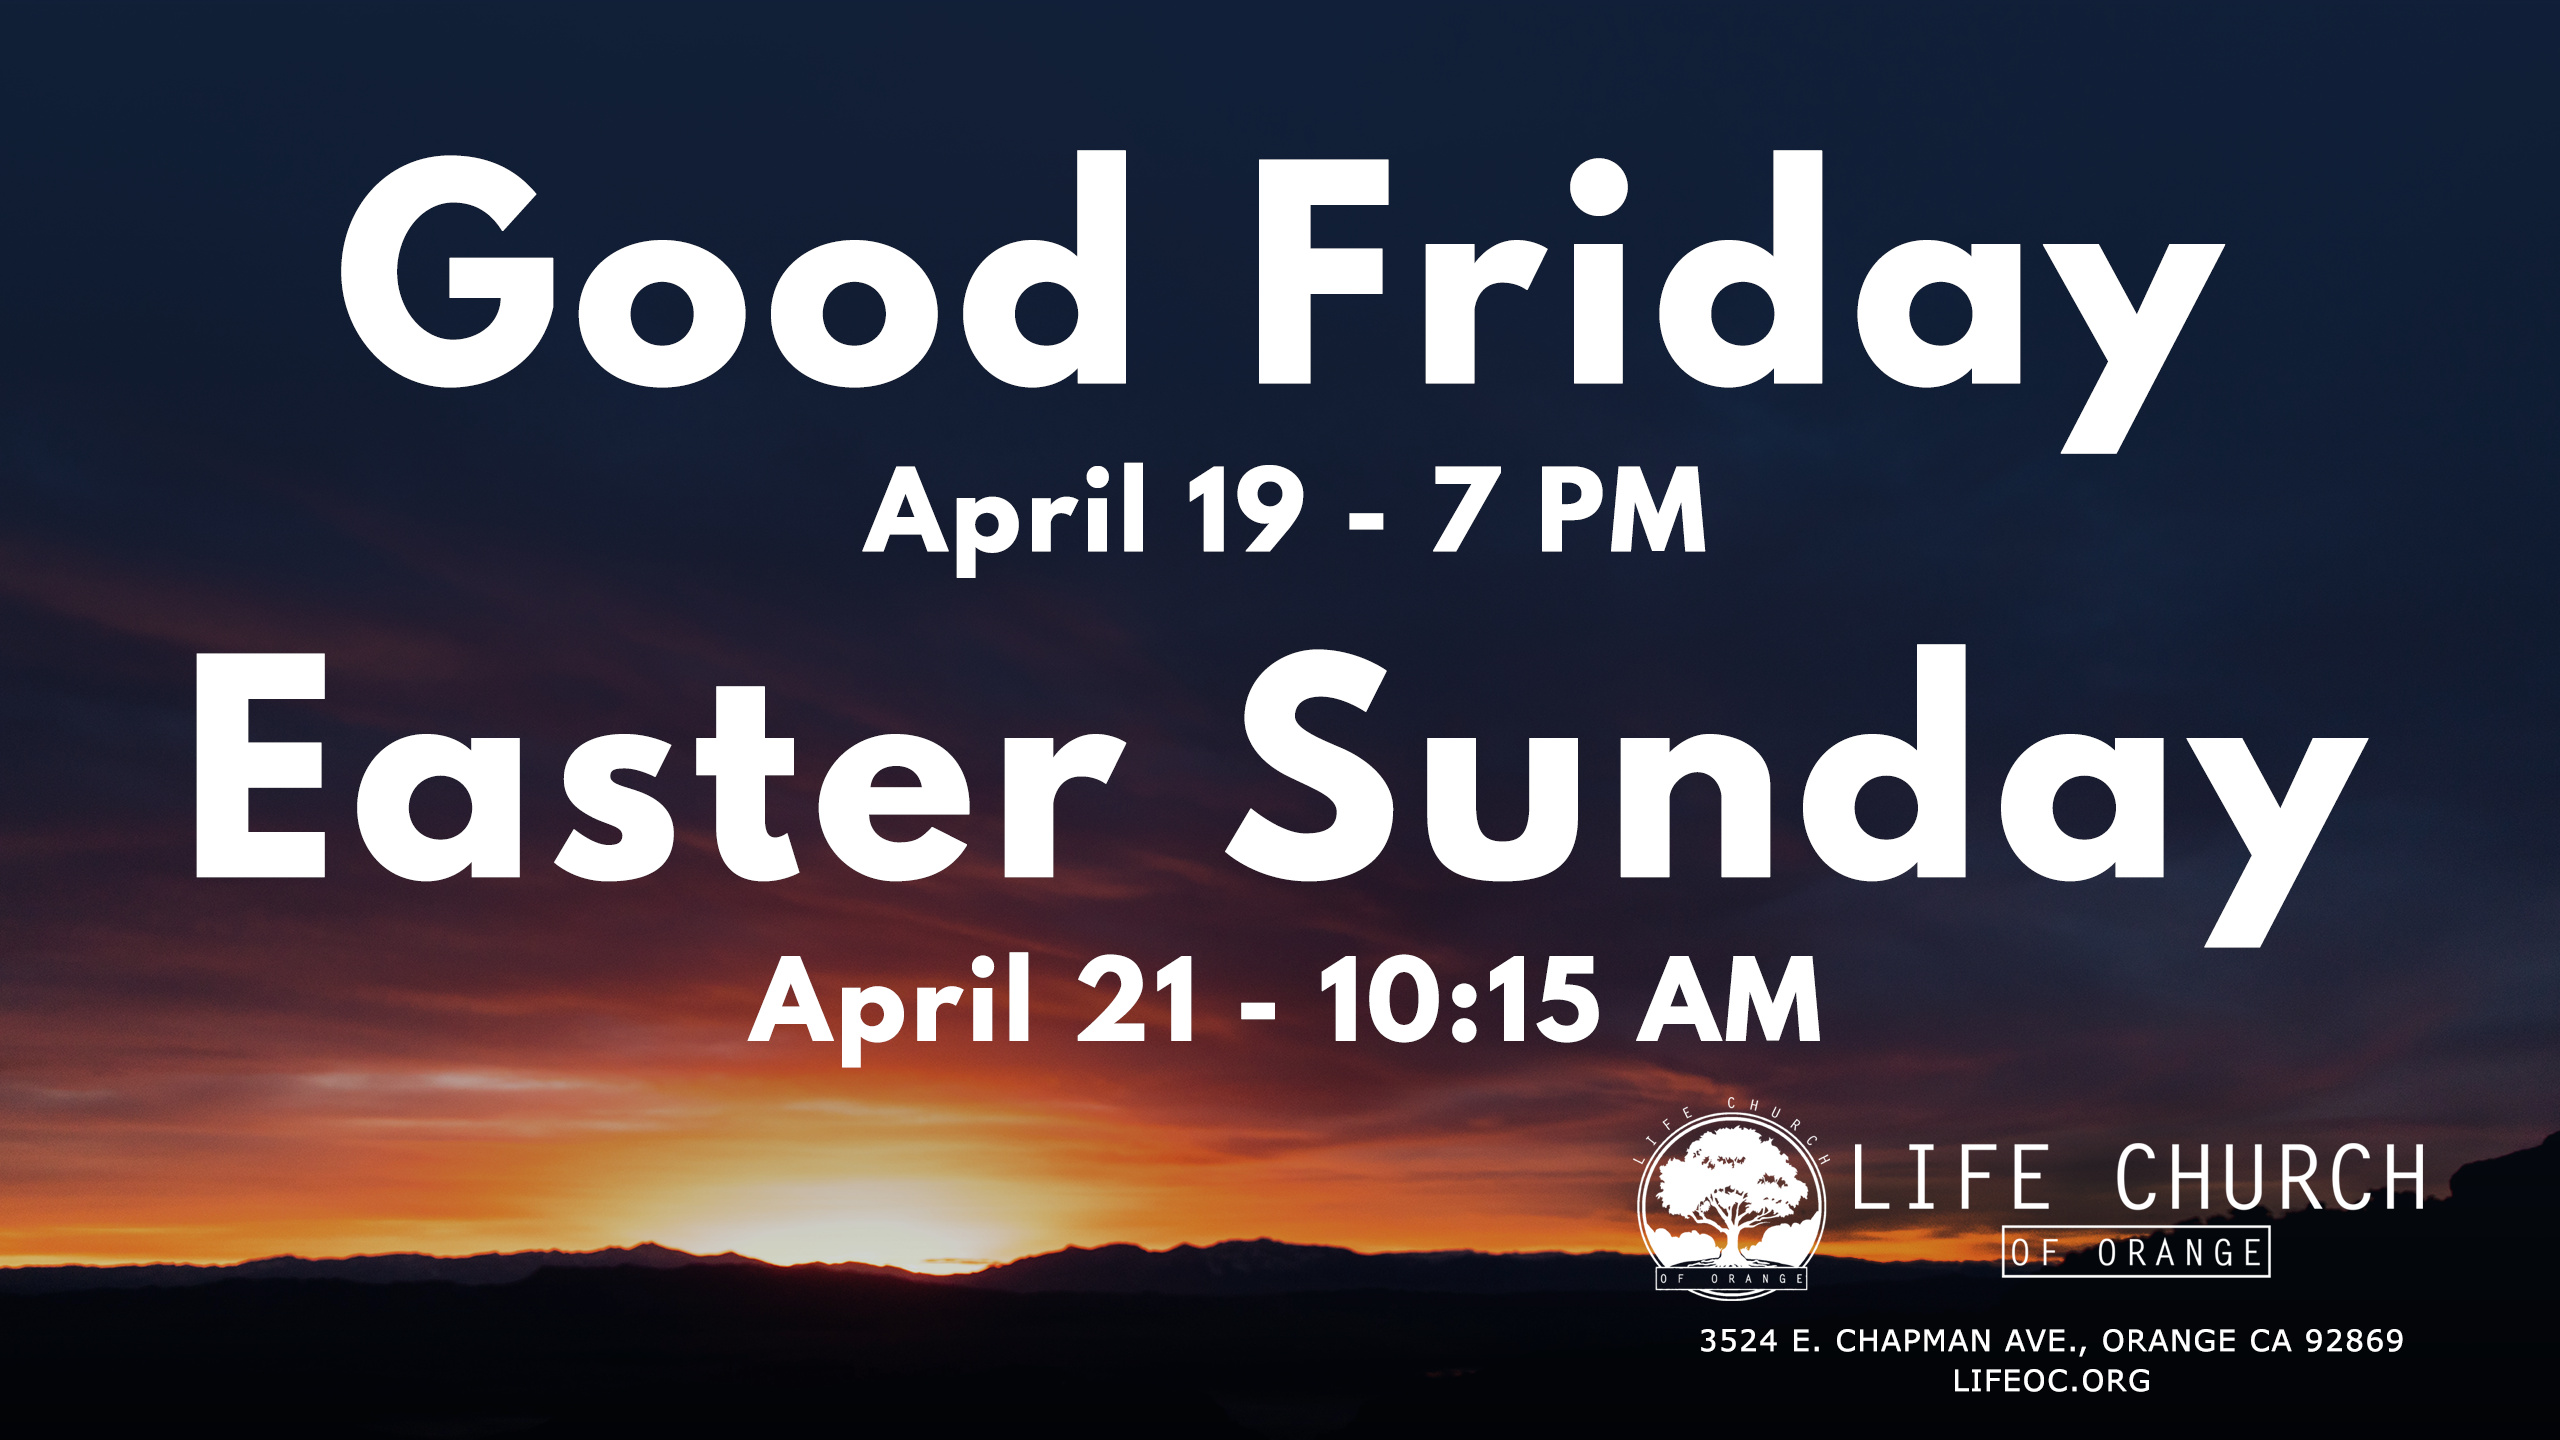 We invite you to celebrate the resurrection of Jesus Christ with us for both our Good Friday and Easter Sunday services.